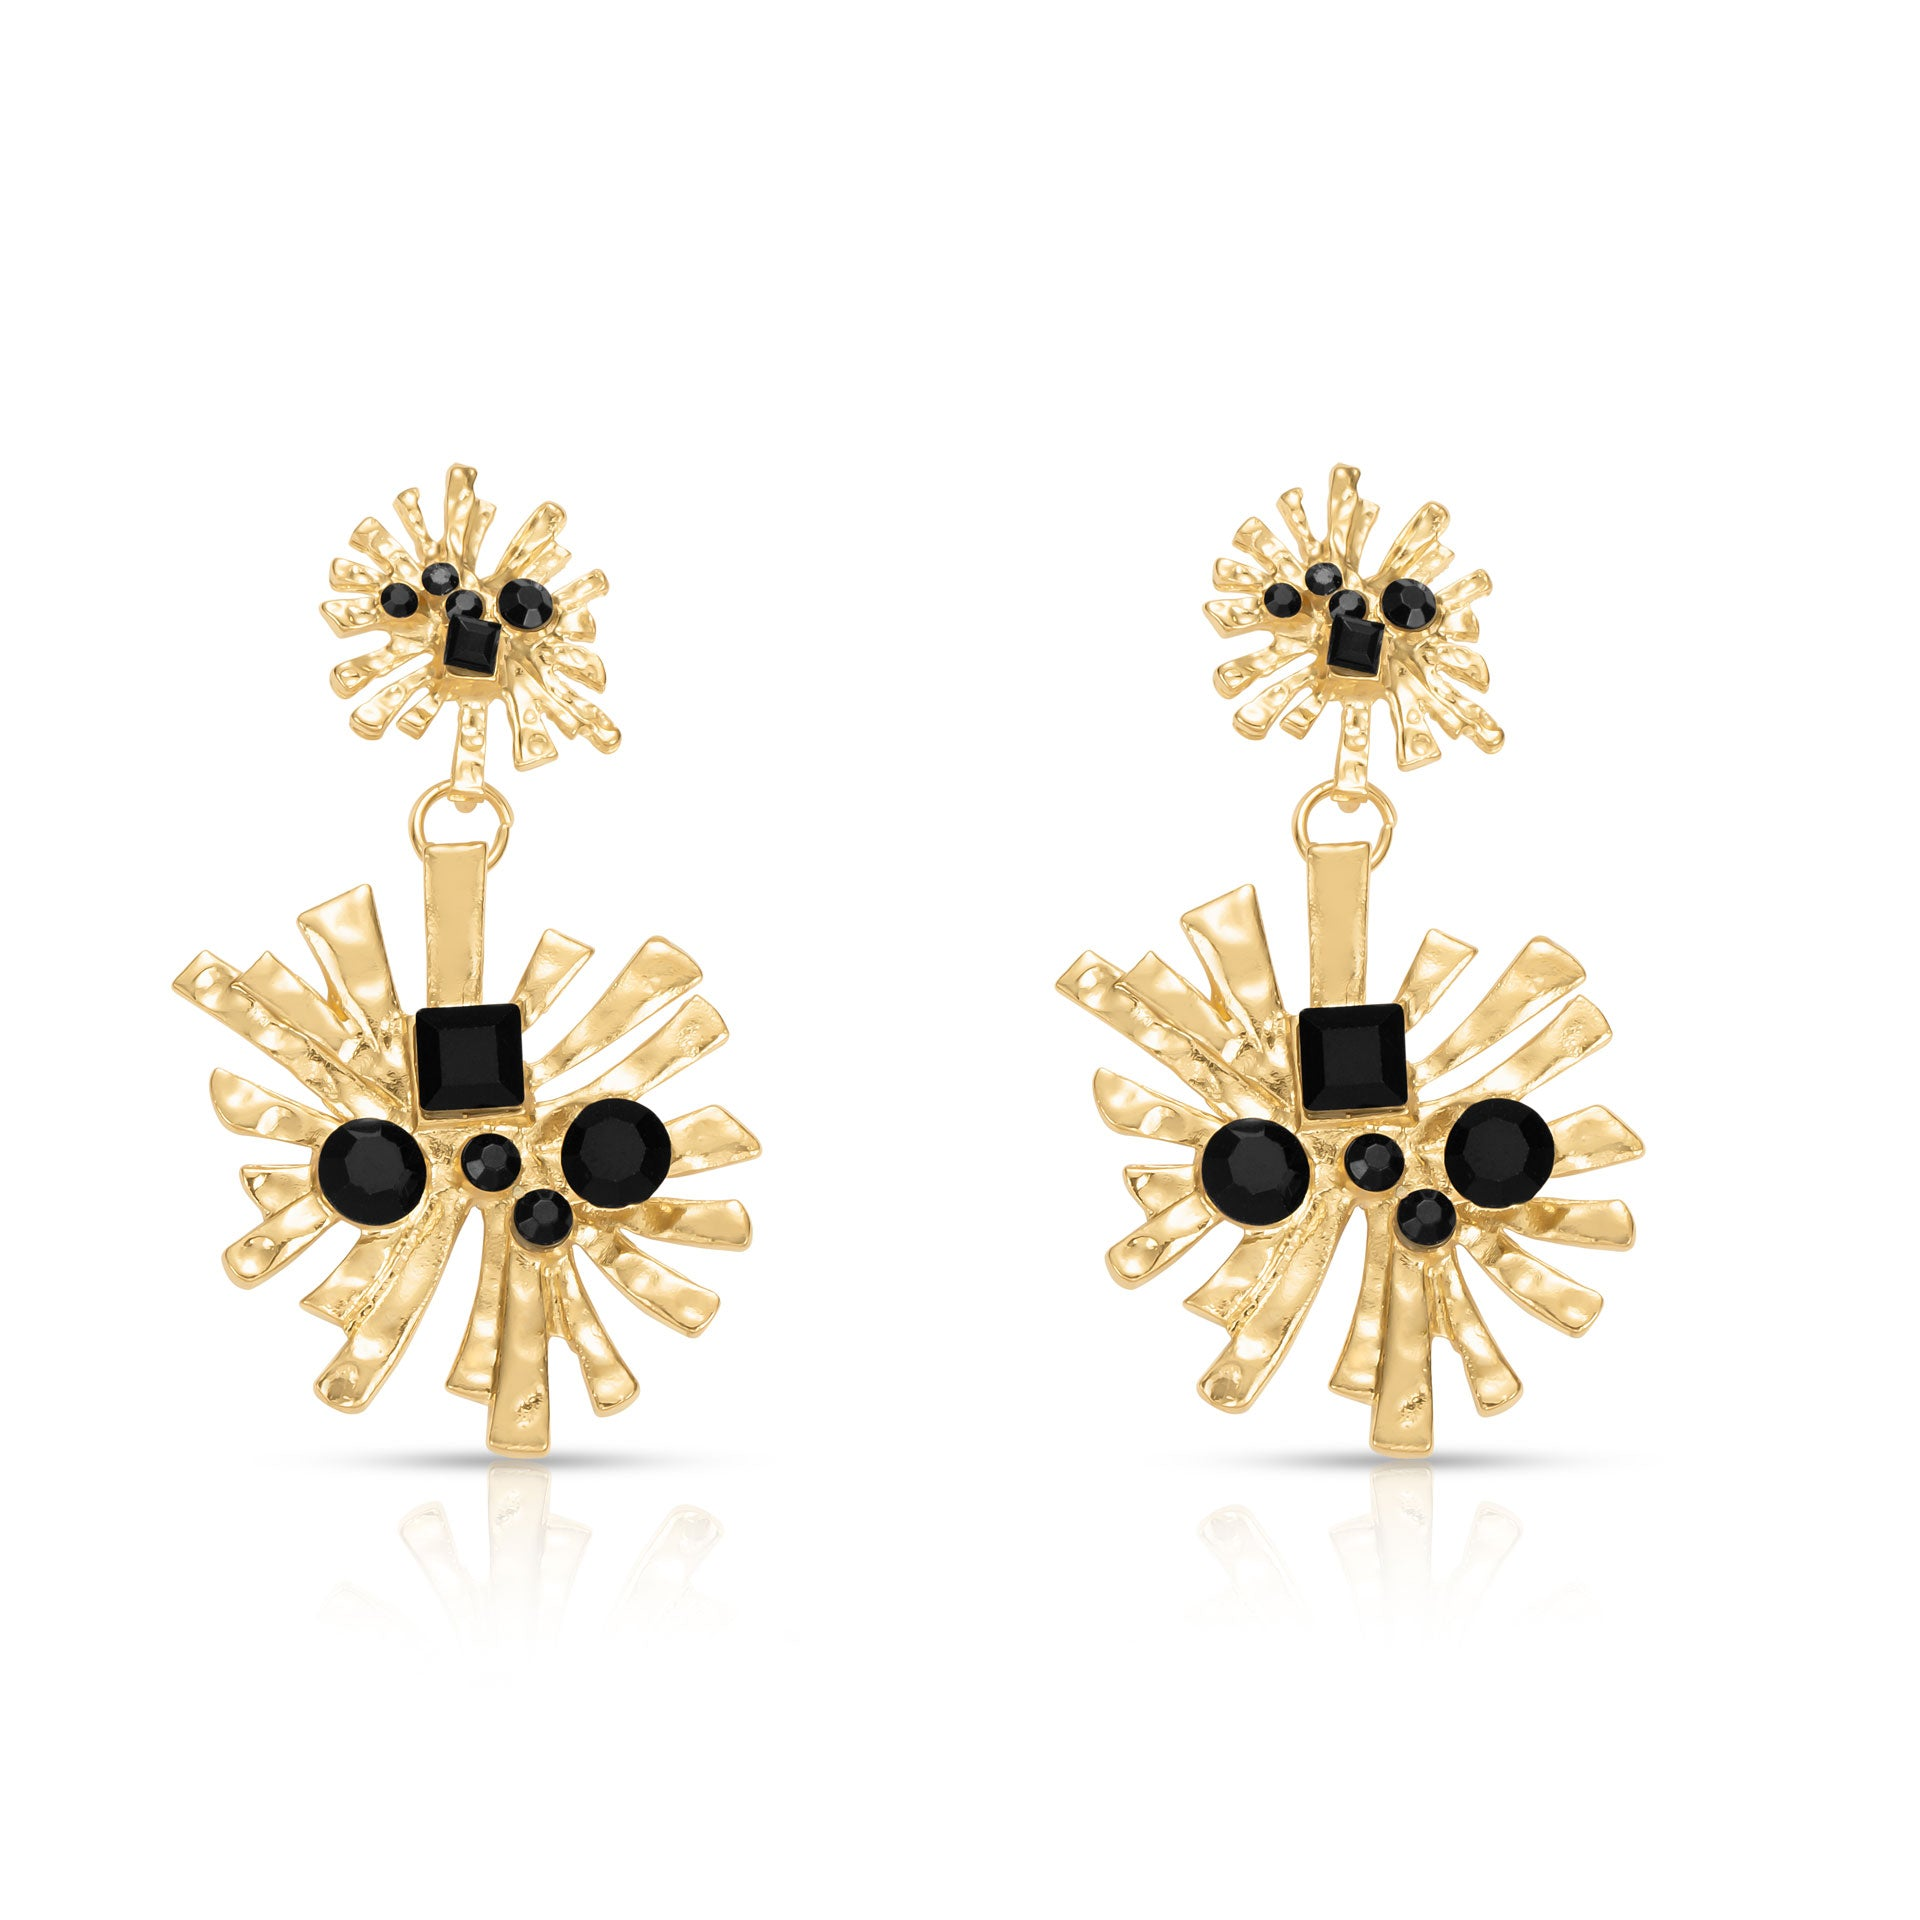 THE BEATRICE EARRINGS